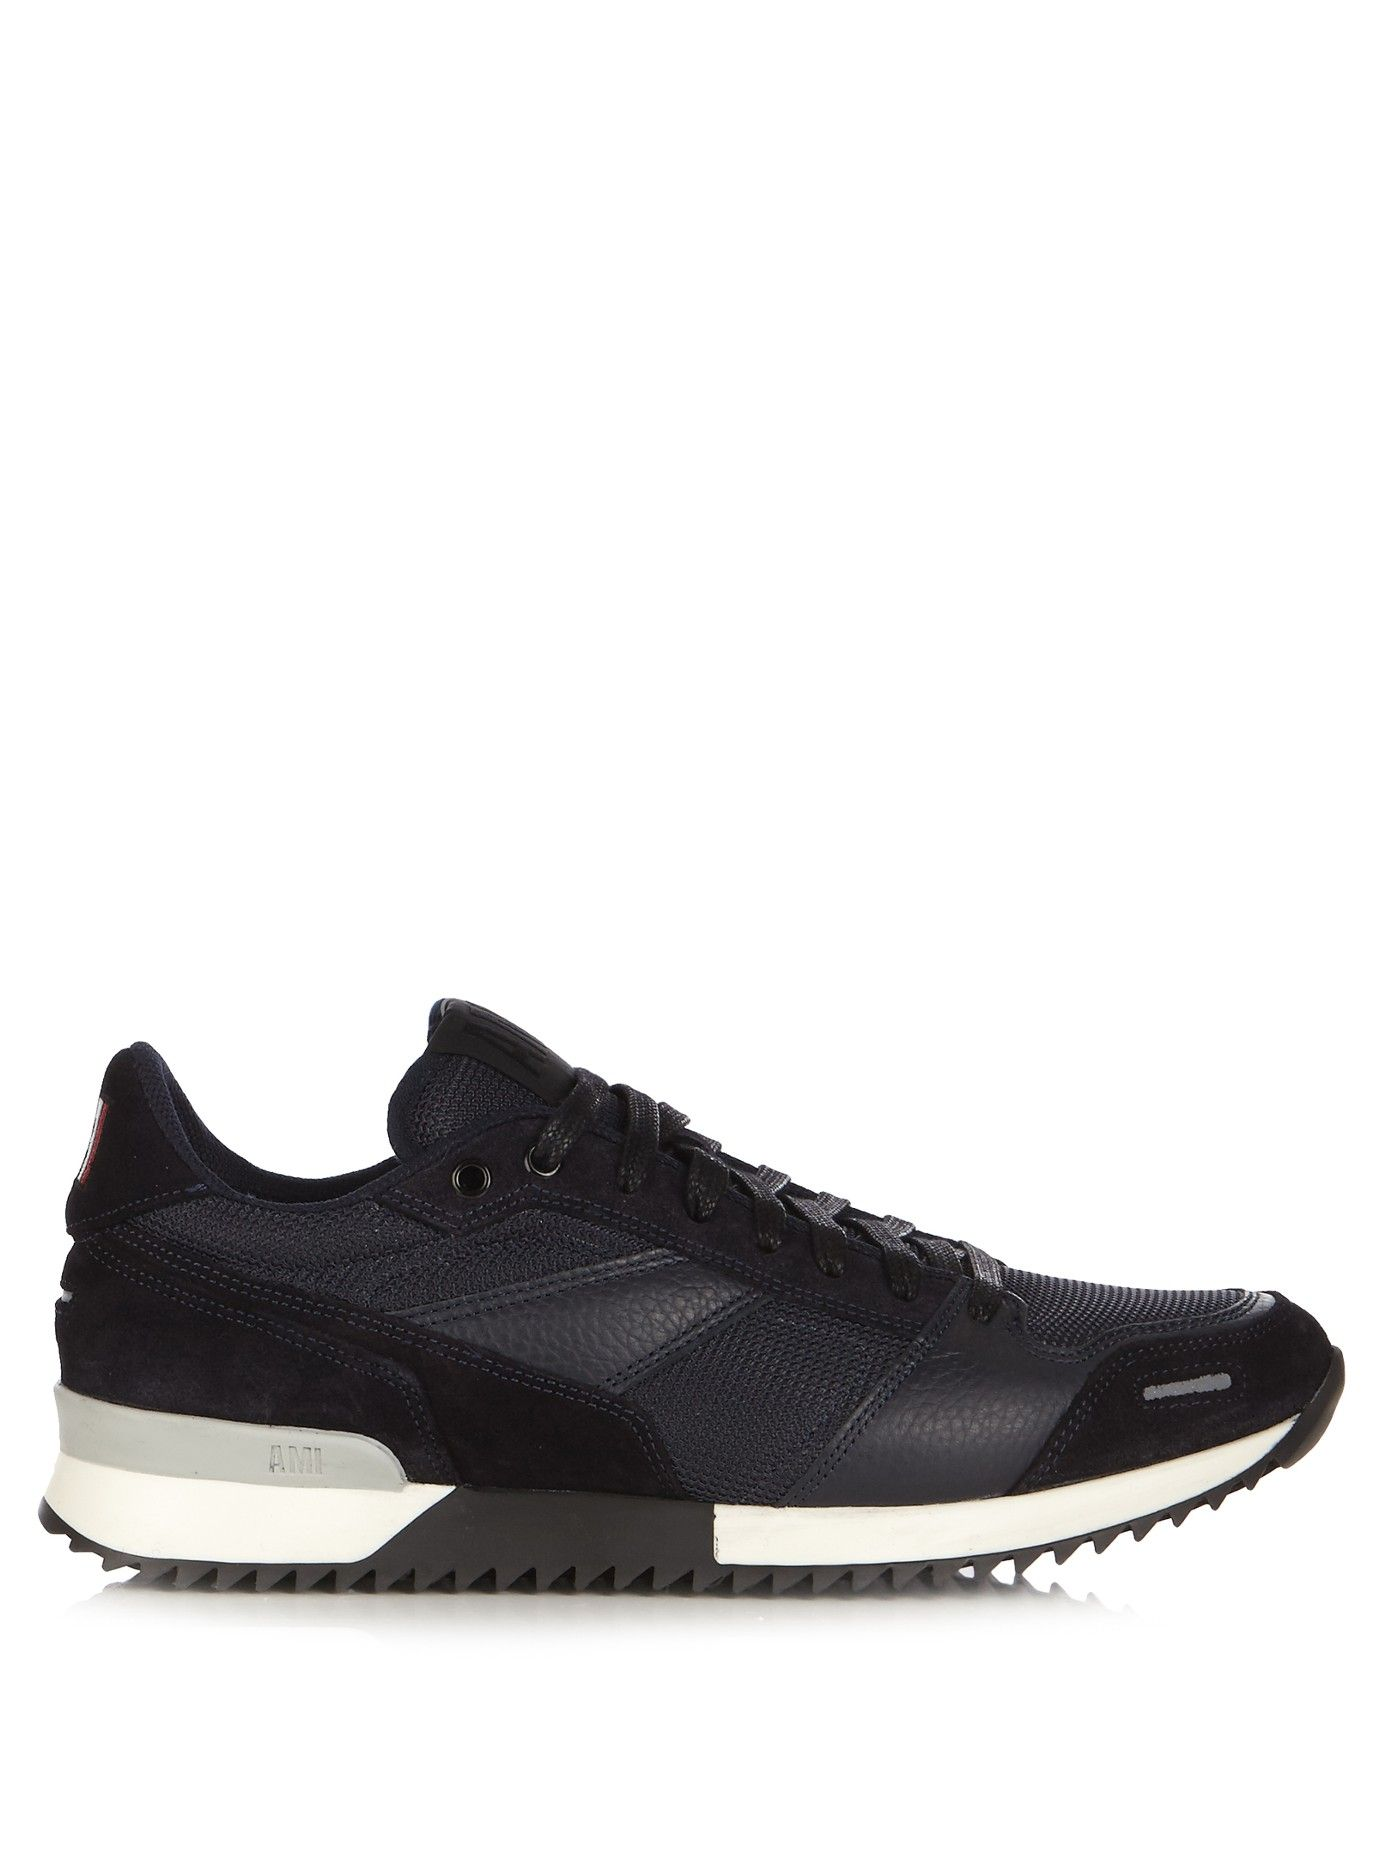 AMI. Leather and suede panelled trainers